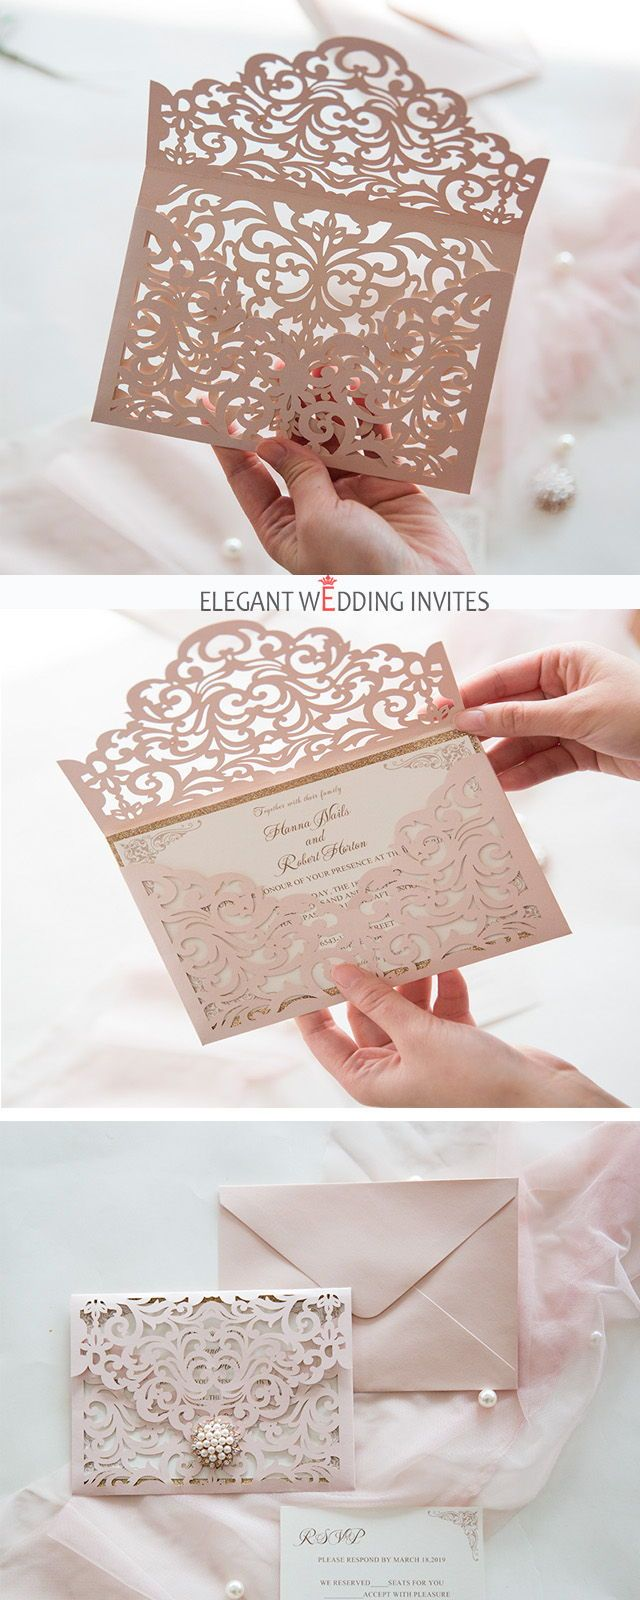 we cordially invite you to our wedding